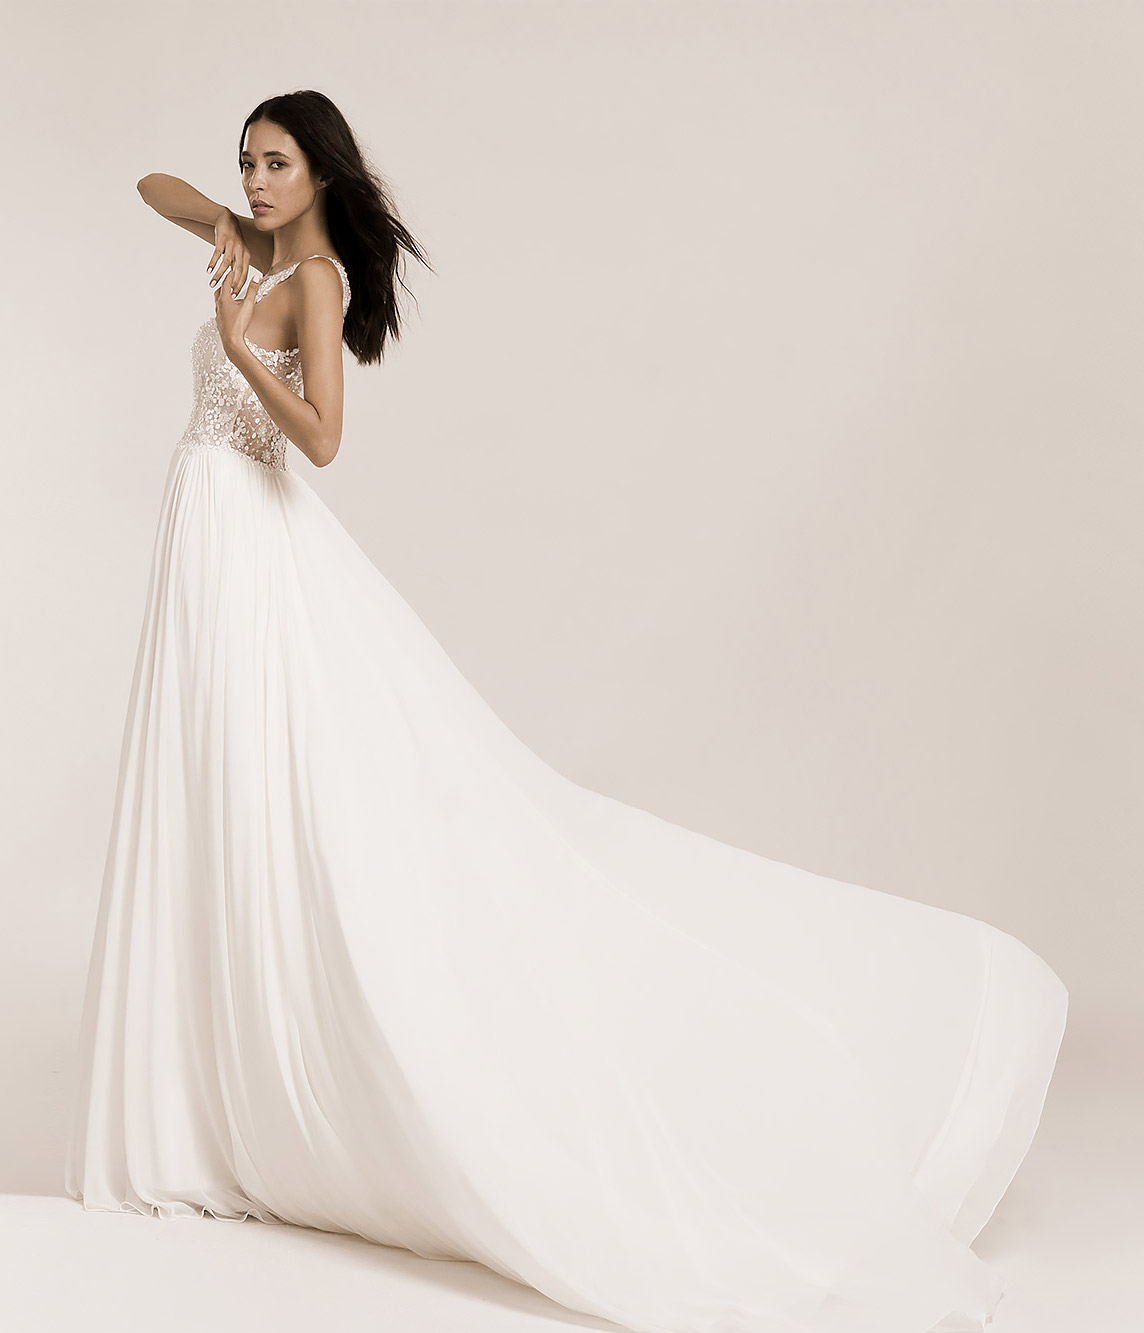 Wedding dresses and bridal gowns b2b business to business for merchants.